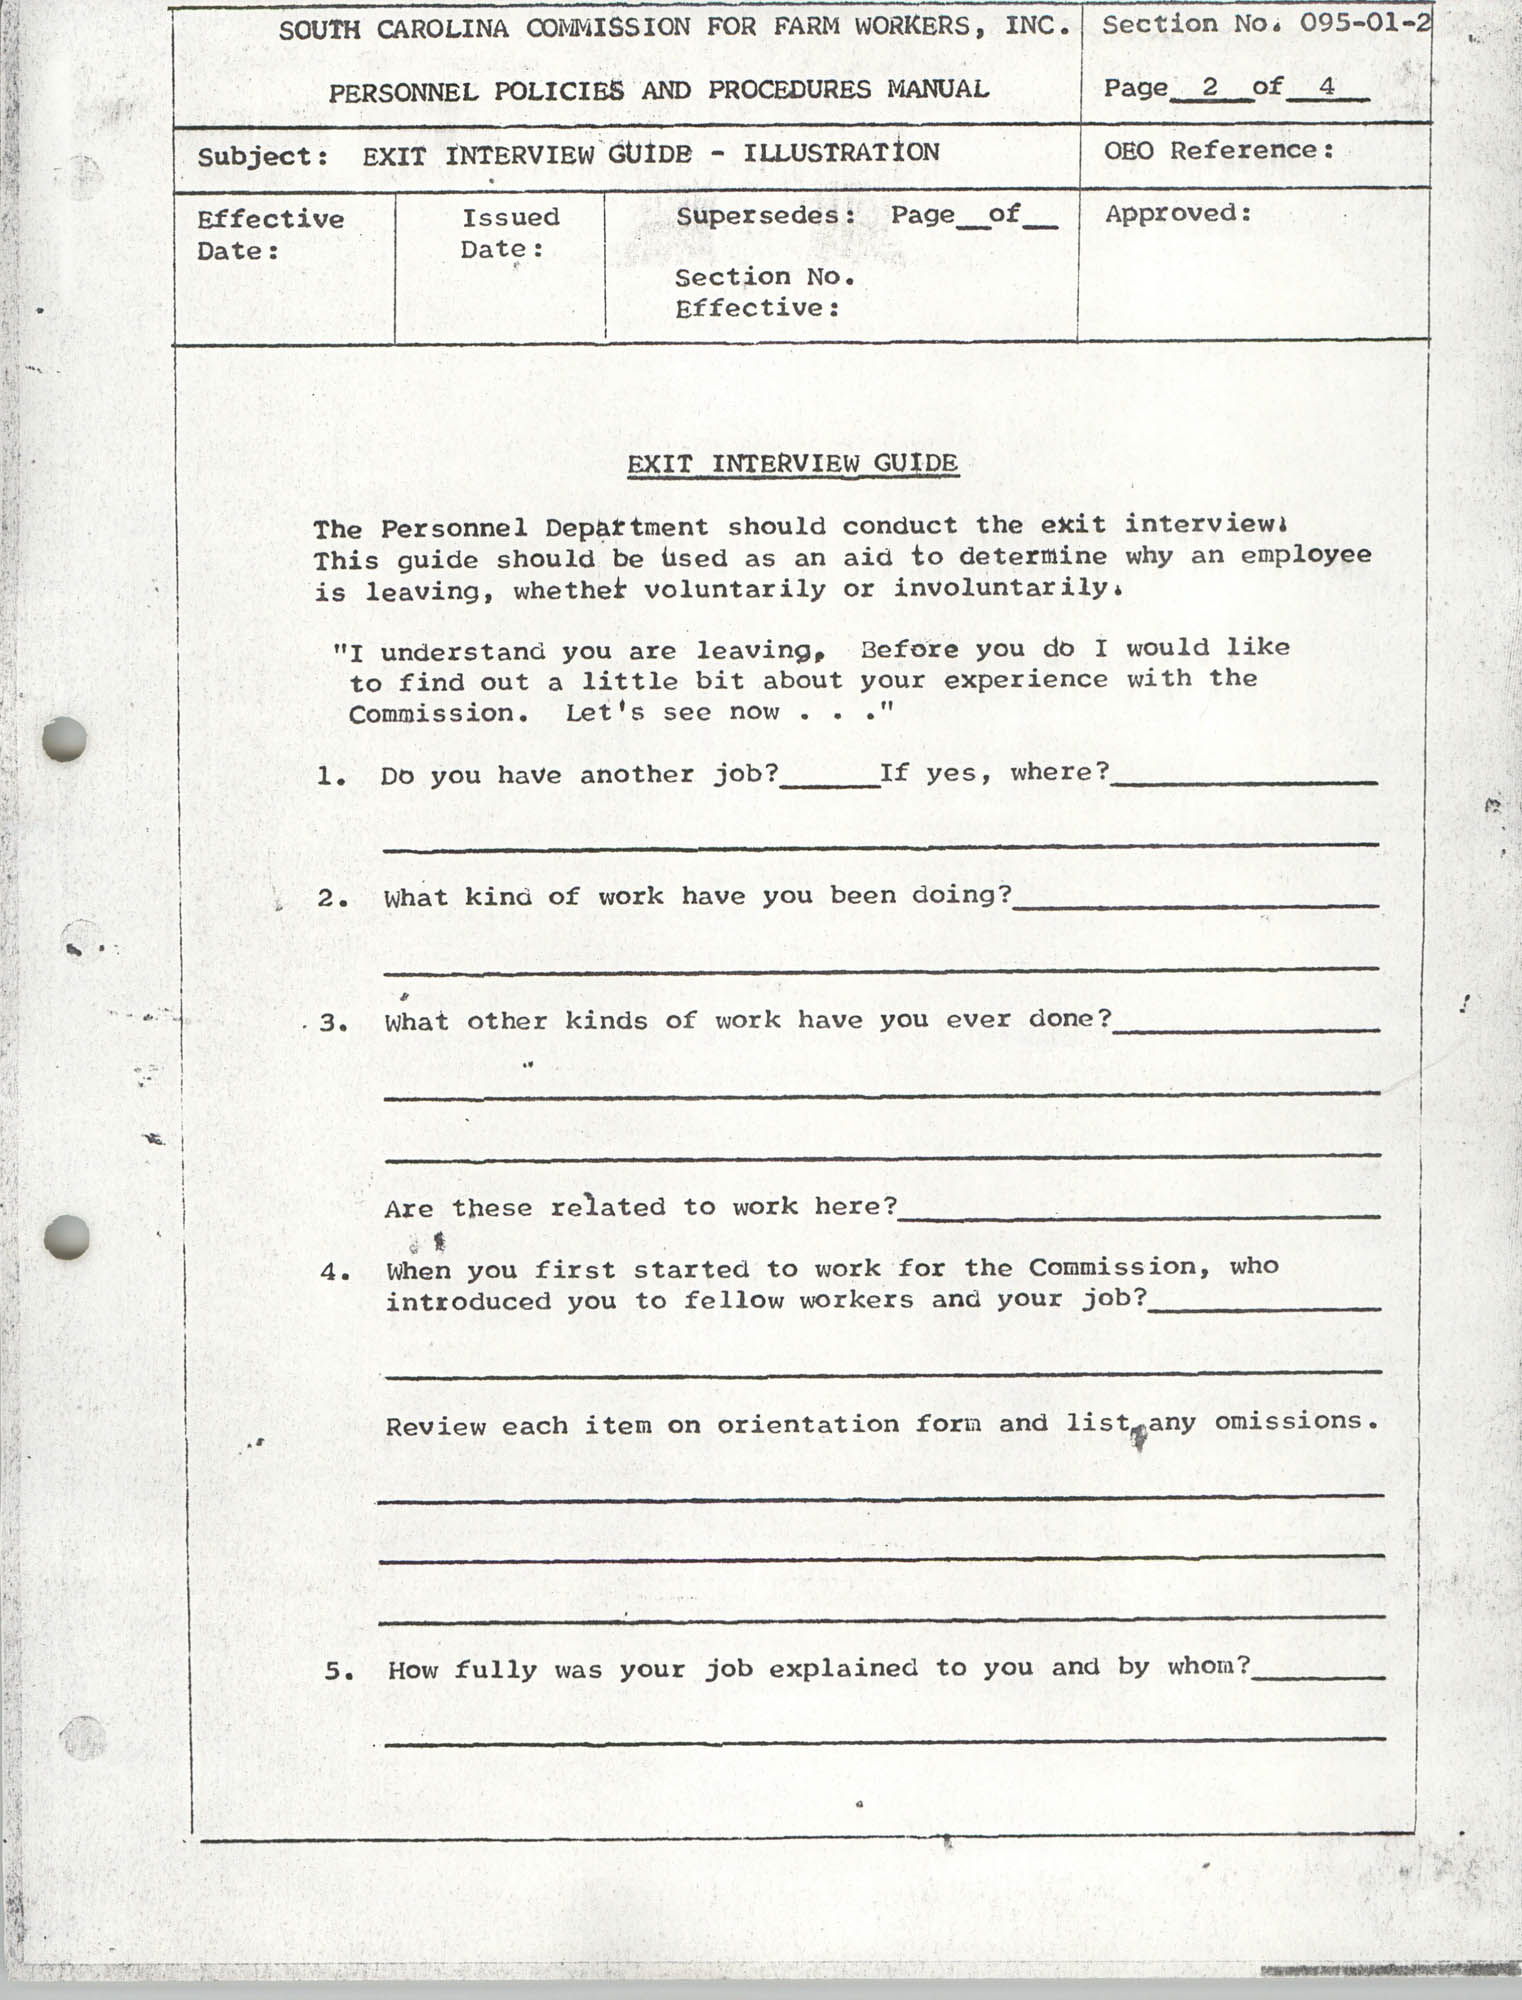 Personnel Policies and Procedures Manual, Section No. 095-01-2, Page 2